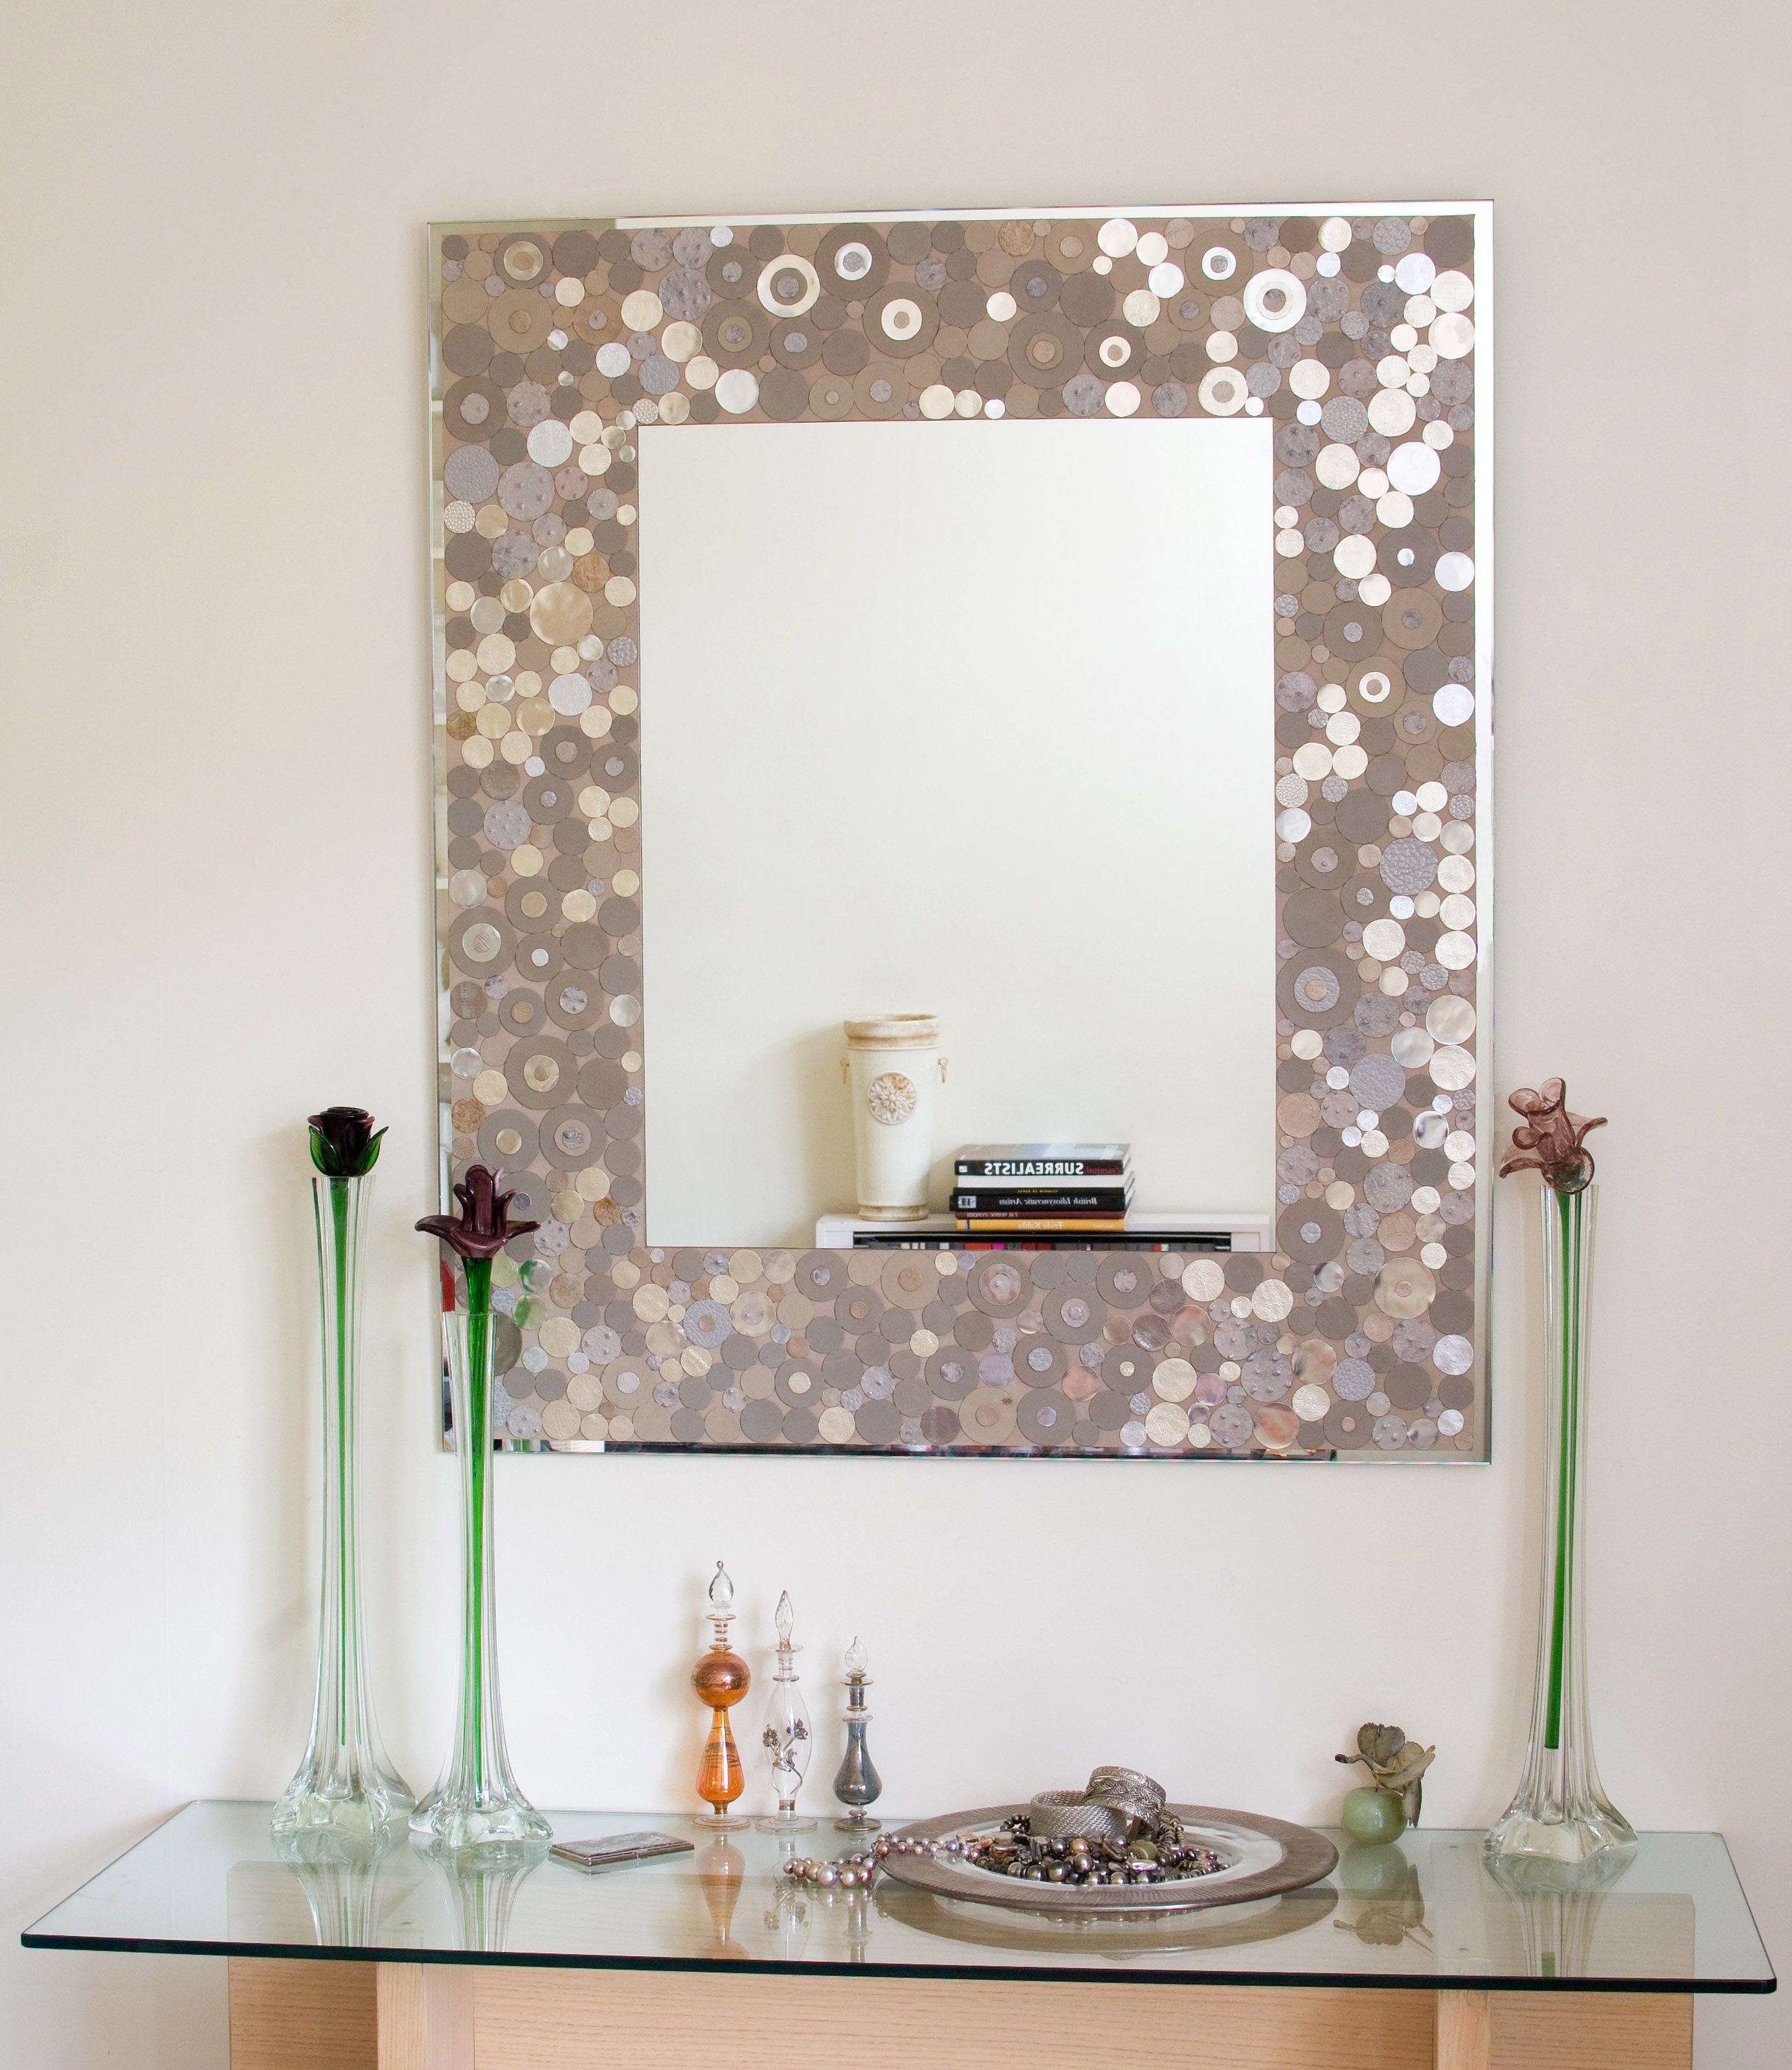 20 vanity mirror with lights ideas diy or buy for amour